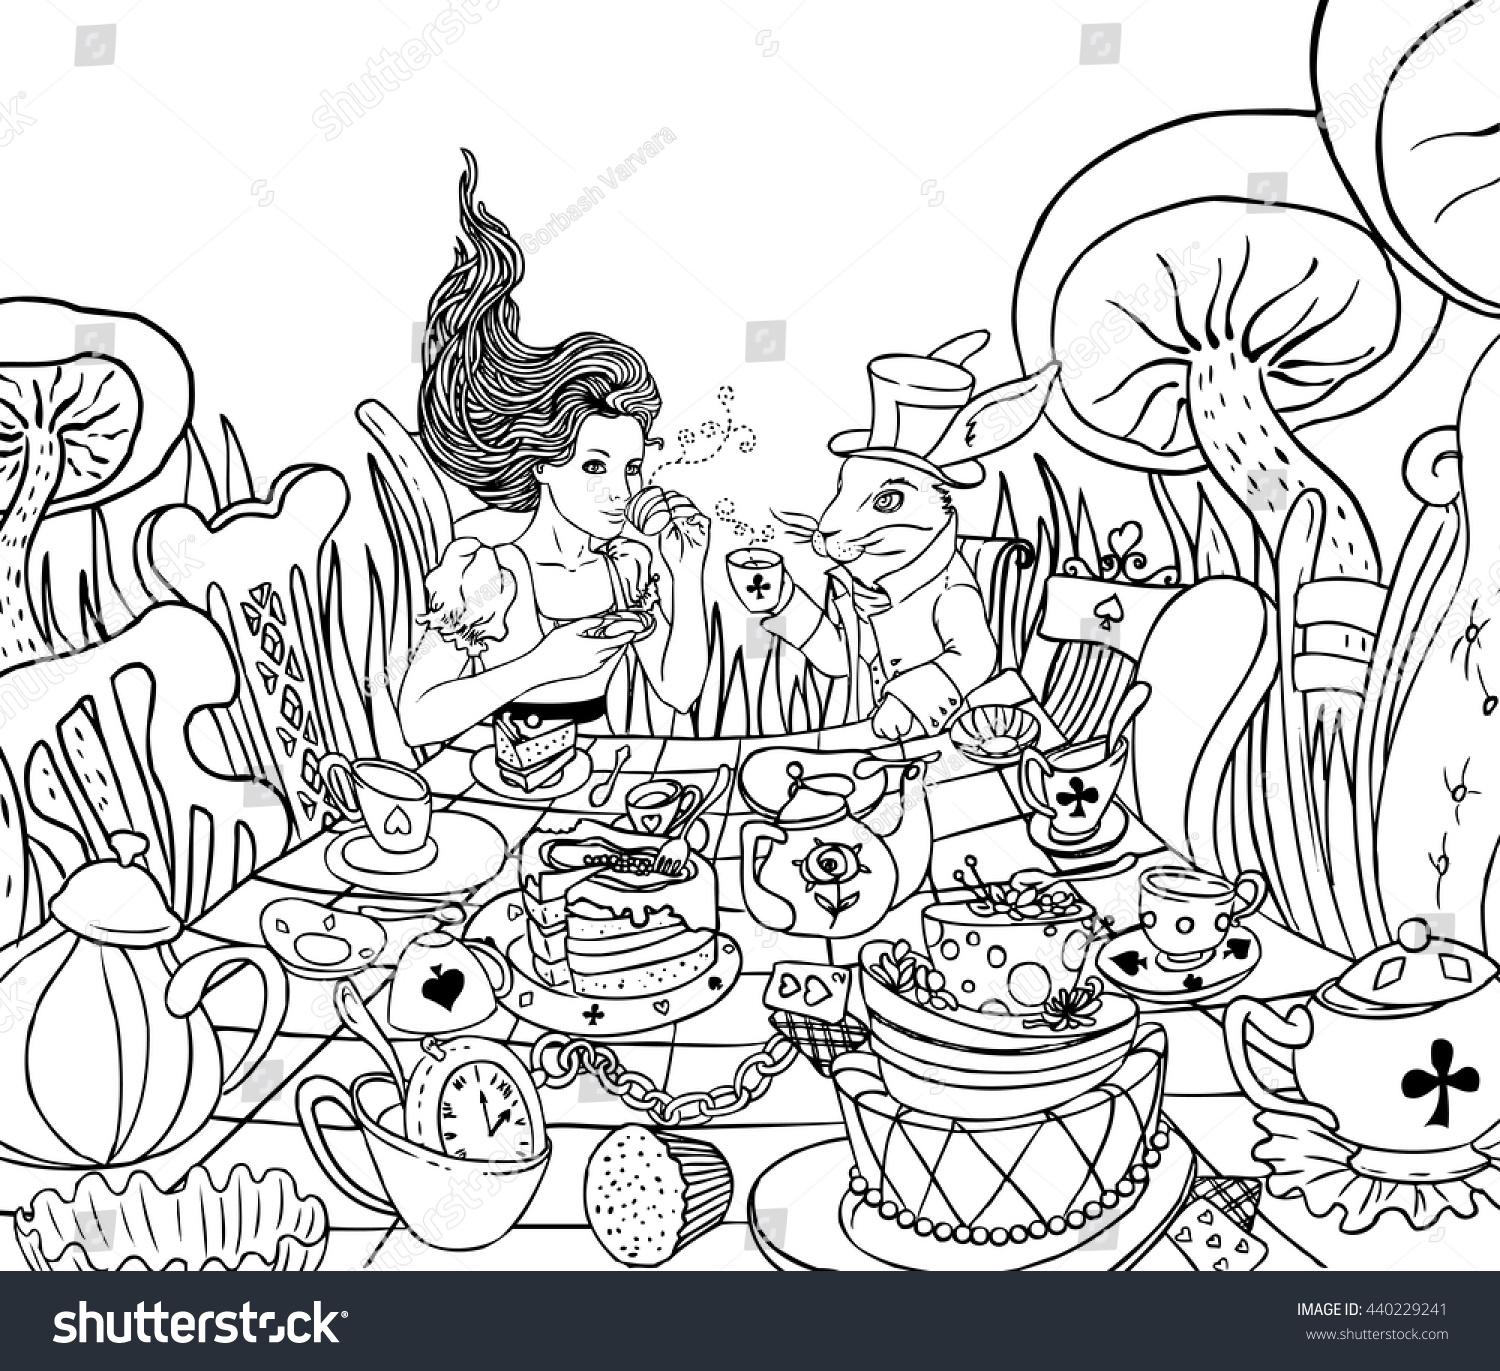 Mad Tea Party Alices Adventures Wonderland Stock Vector 440229241